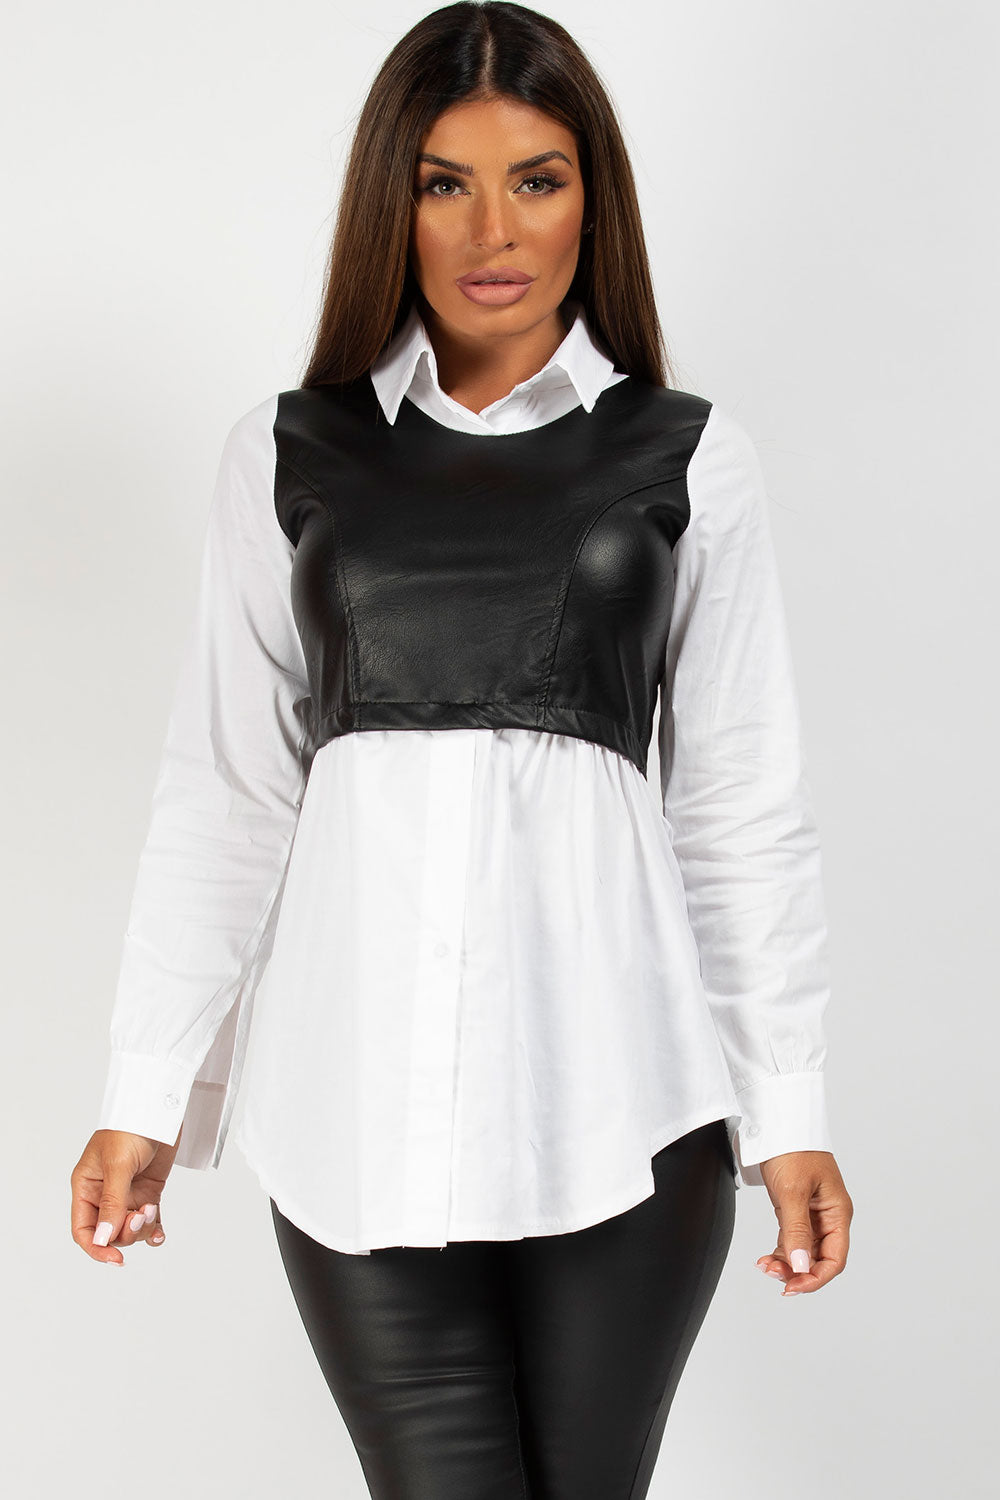 black and white pu bust panel shirt